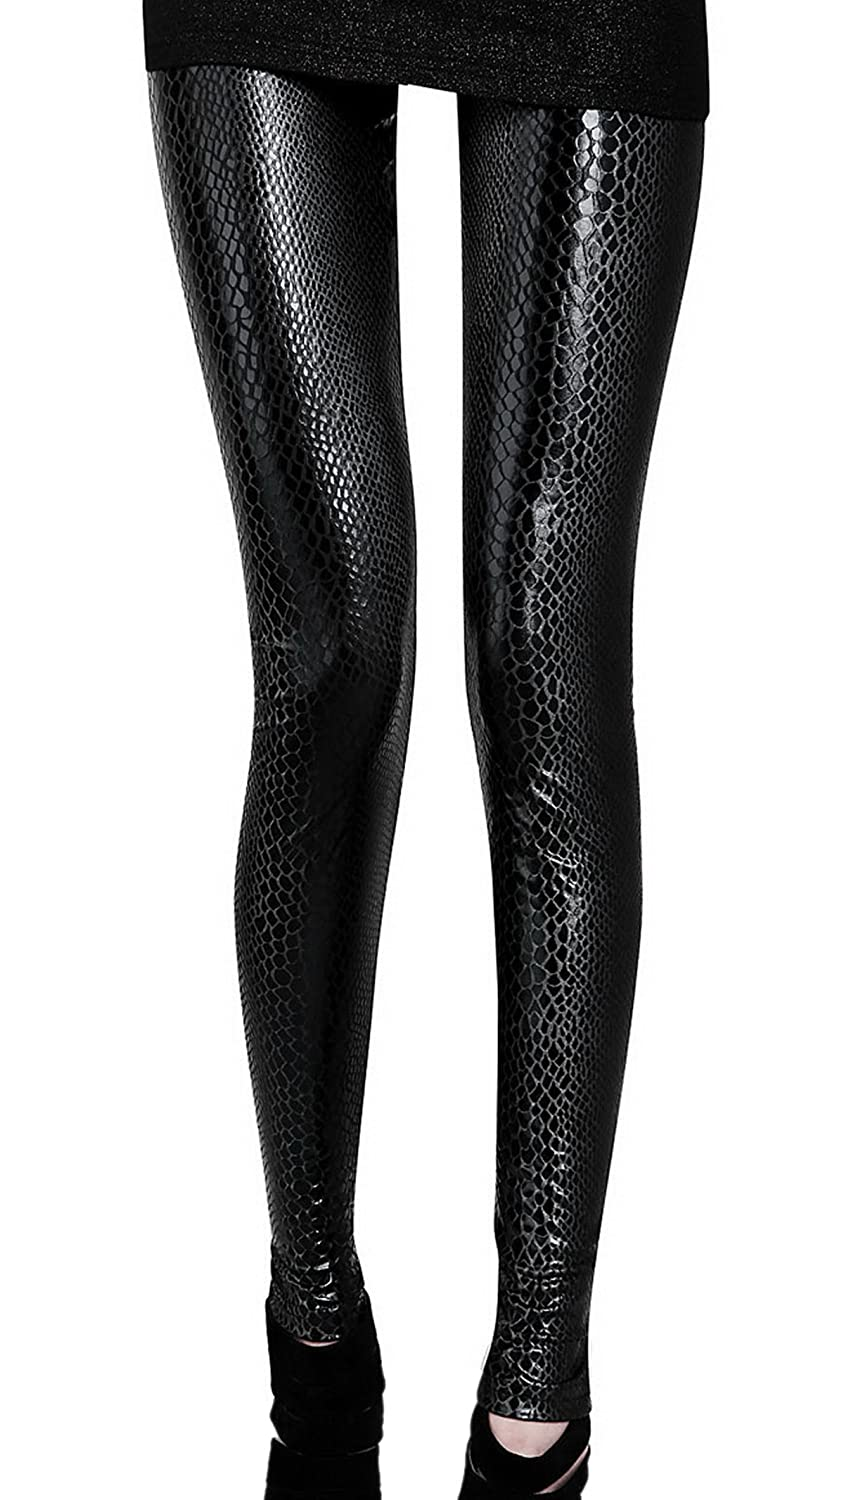 5401a6a7a330c7 Stretchy, Full-Length, Ankle-pleated and Comfortable Slim Fit Leggings.  Flexible, stretchy polyester leggings ...